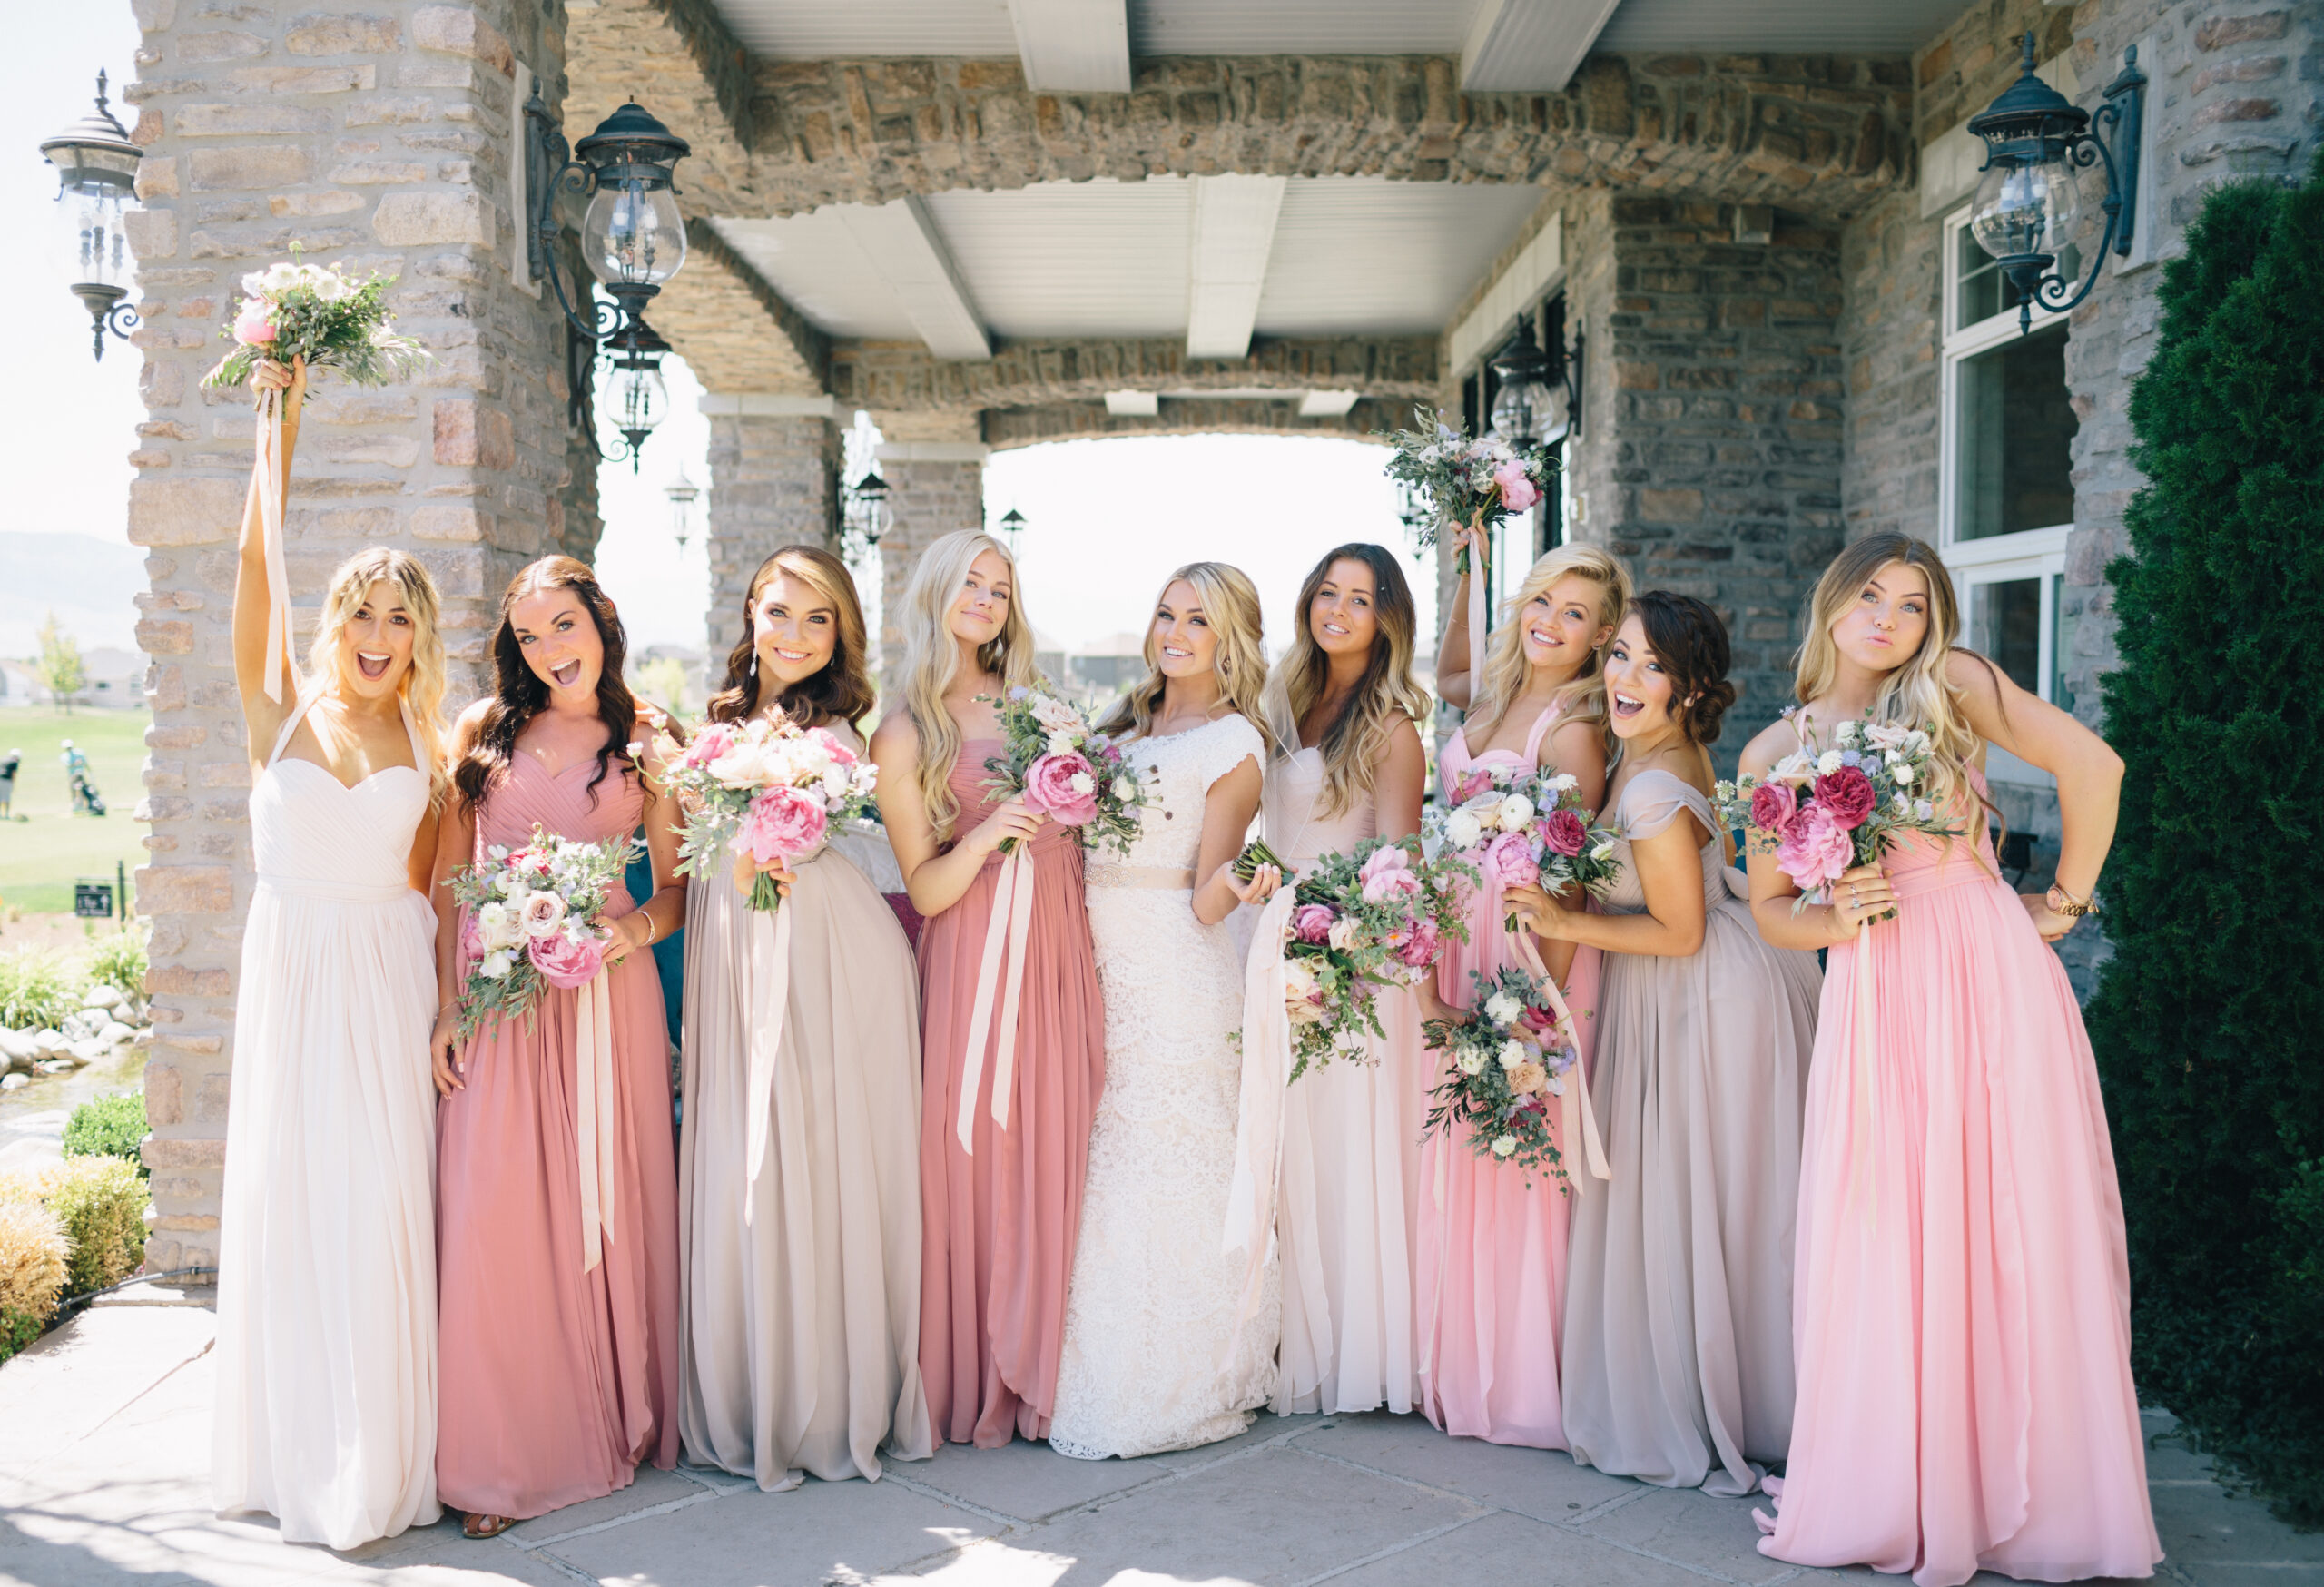 bridesmaids in shades of pink outside with the bride in the middle